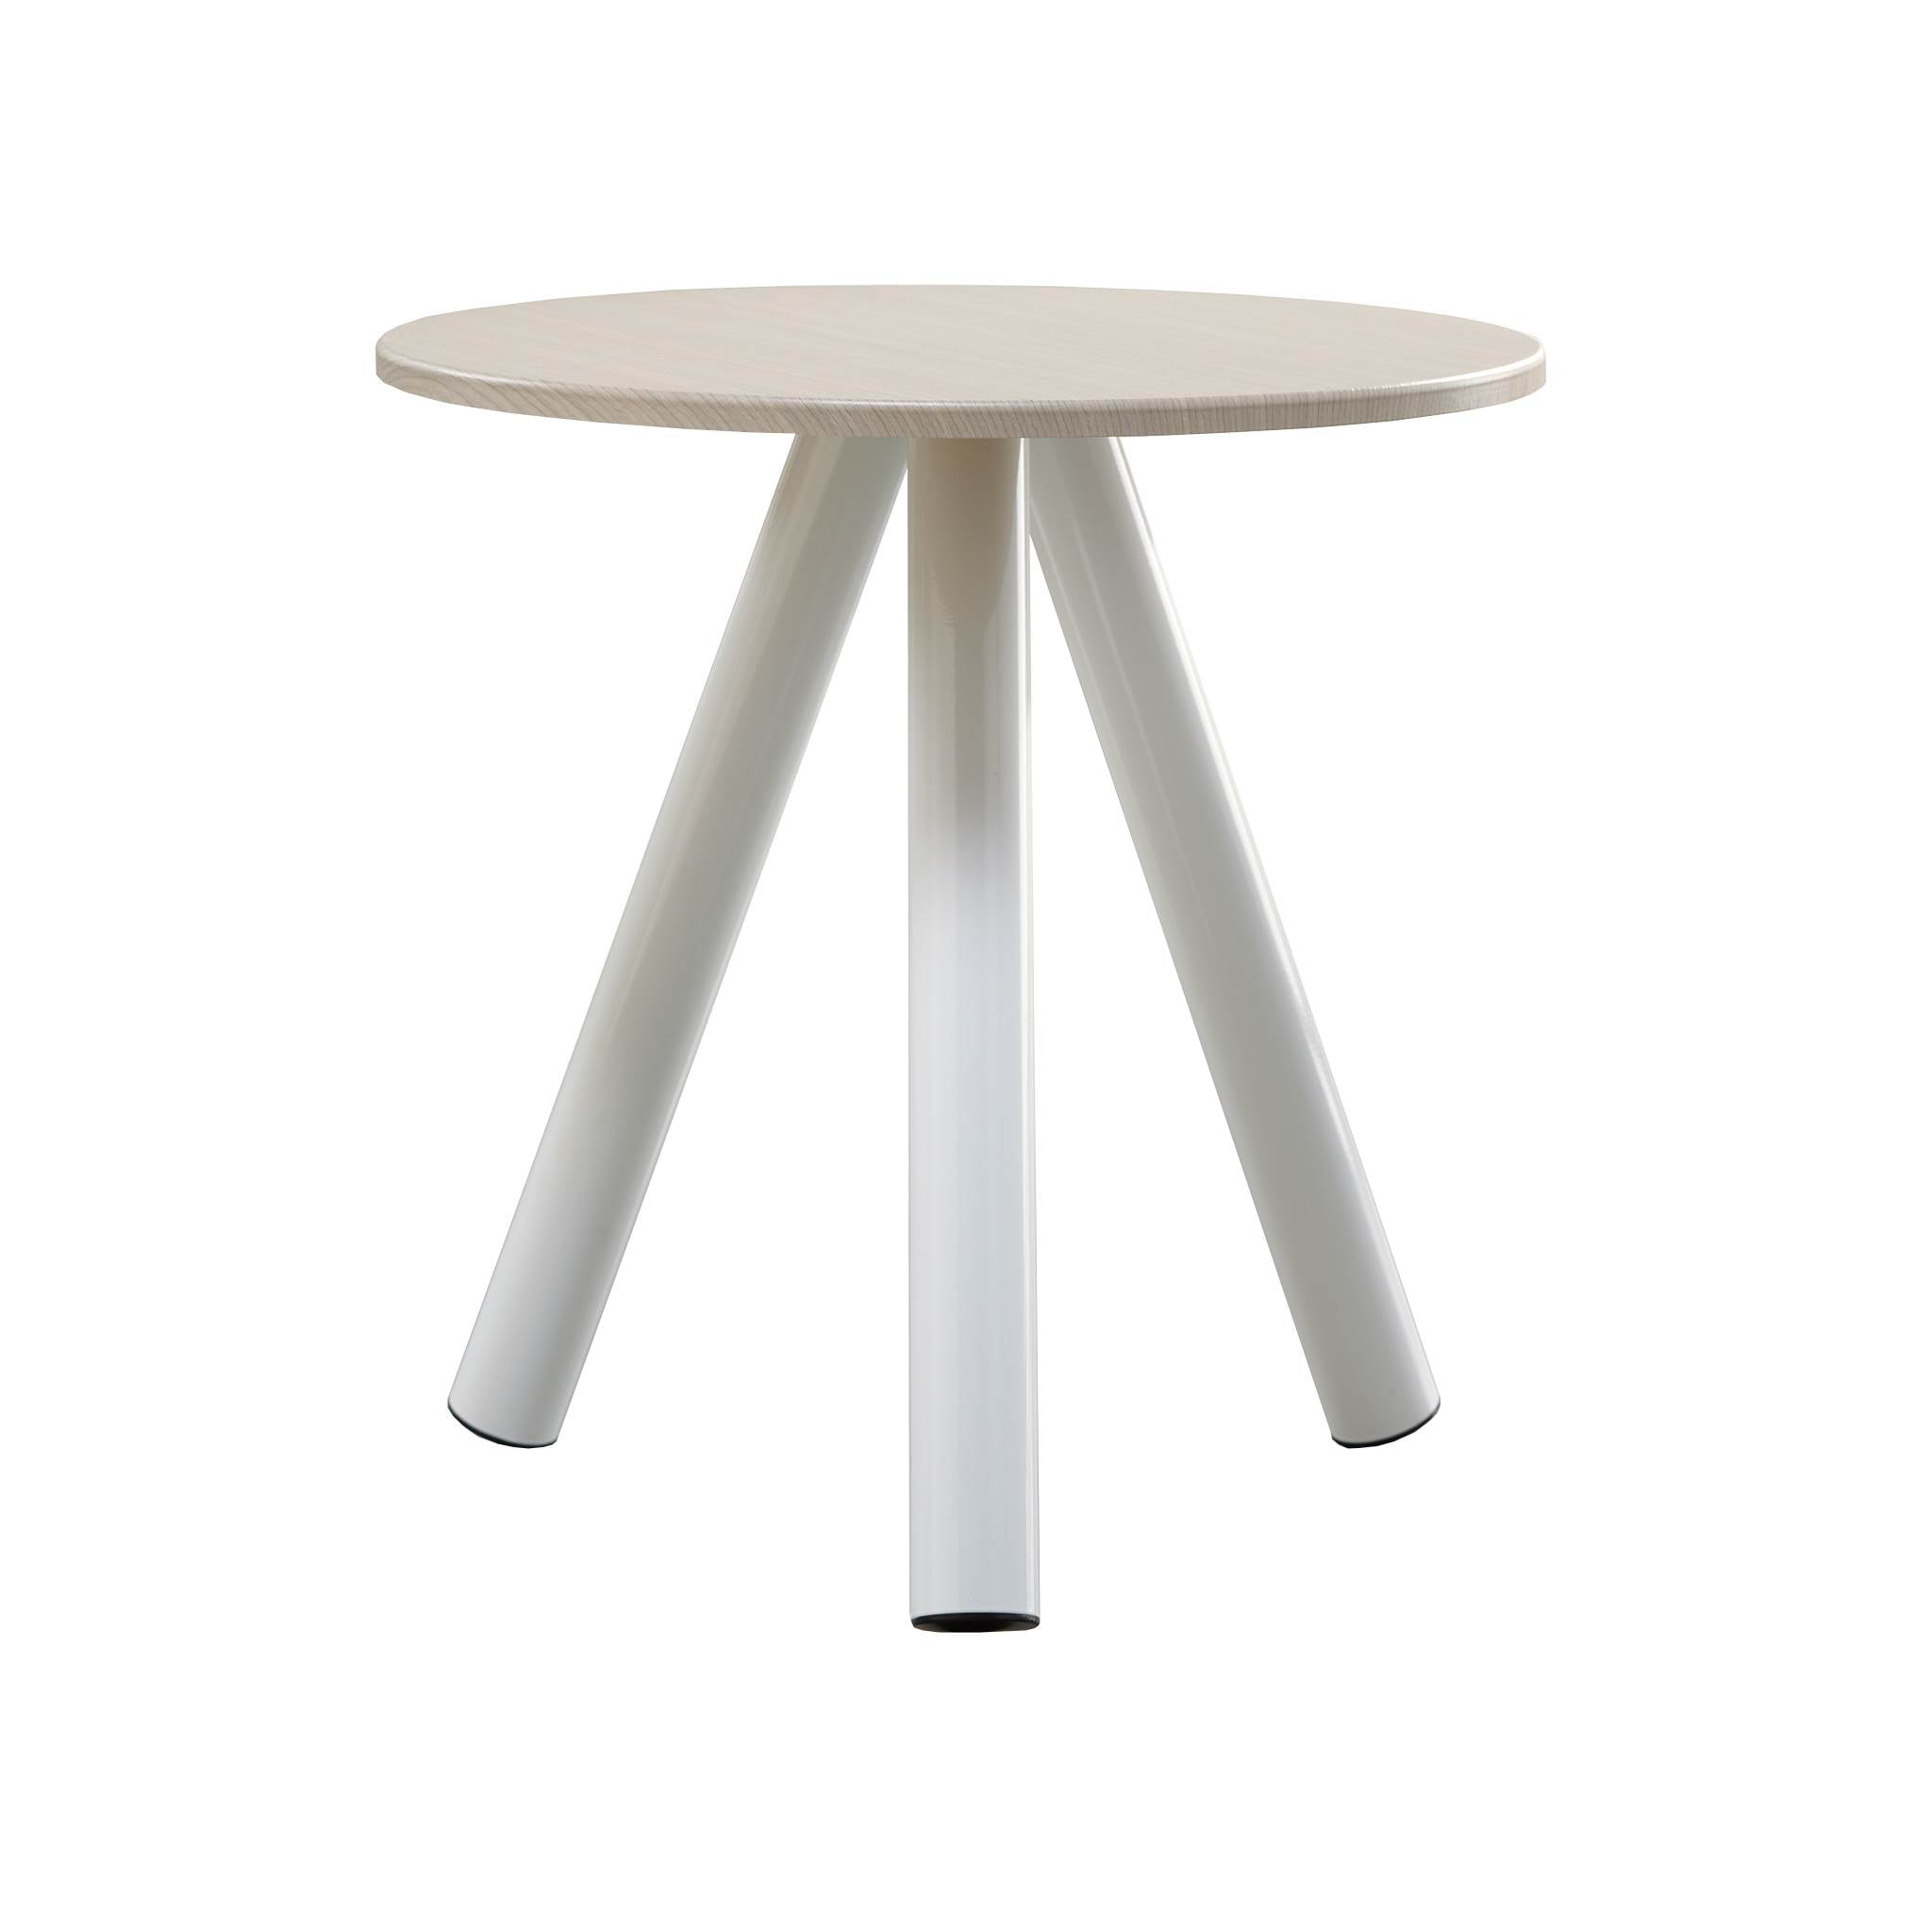 Sauder Soft Modern Collection Side Table Artic White Legs Walmart Com Walmart Com